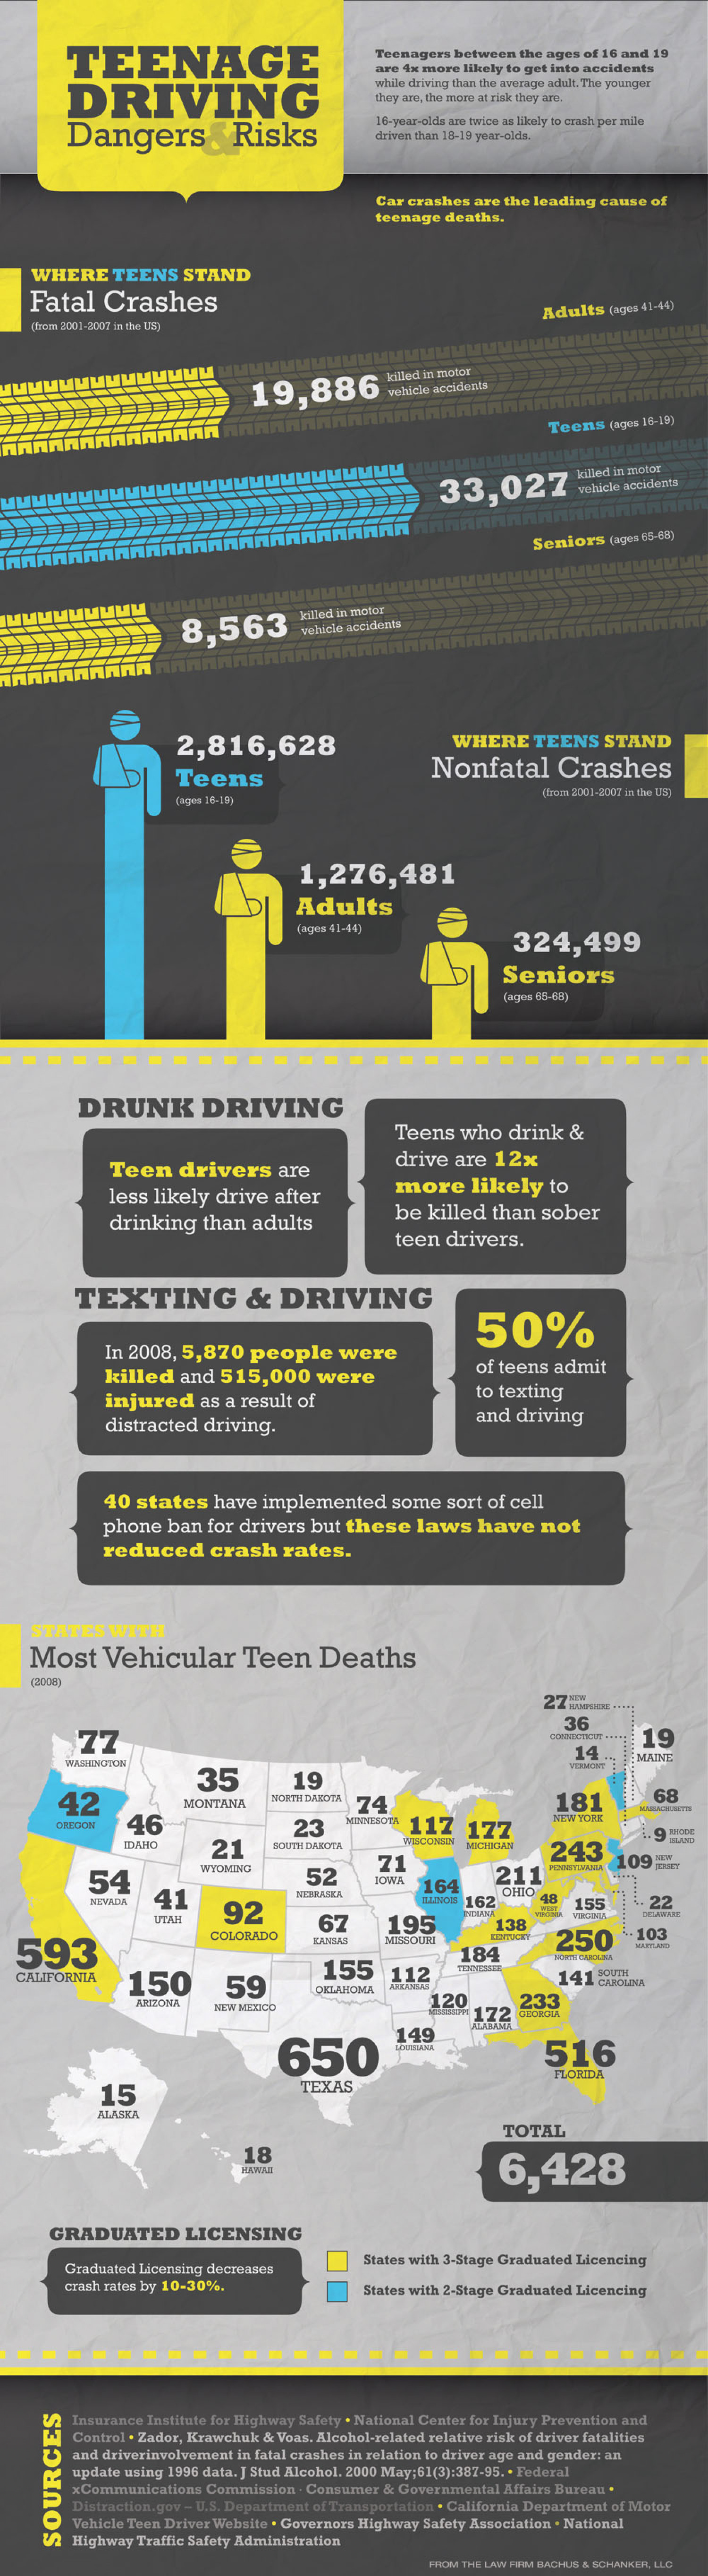 Teenage Driving Dangers & Risks Infographic